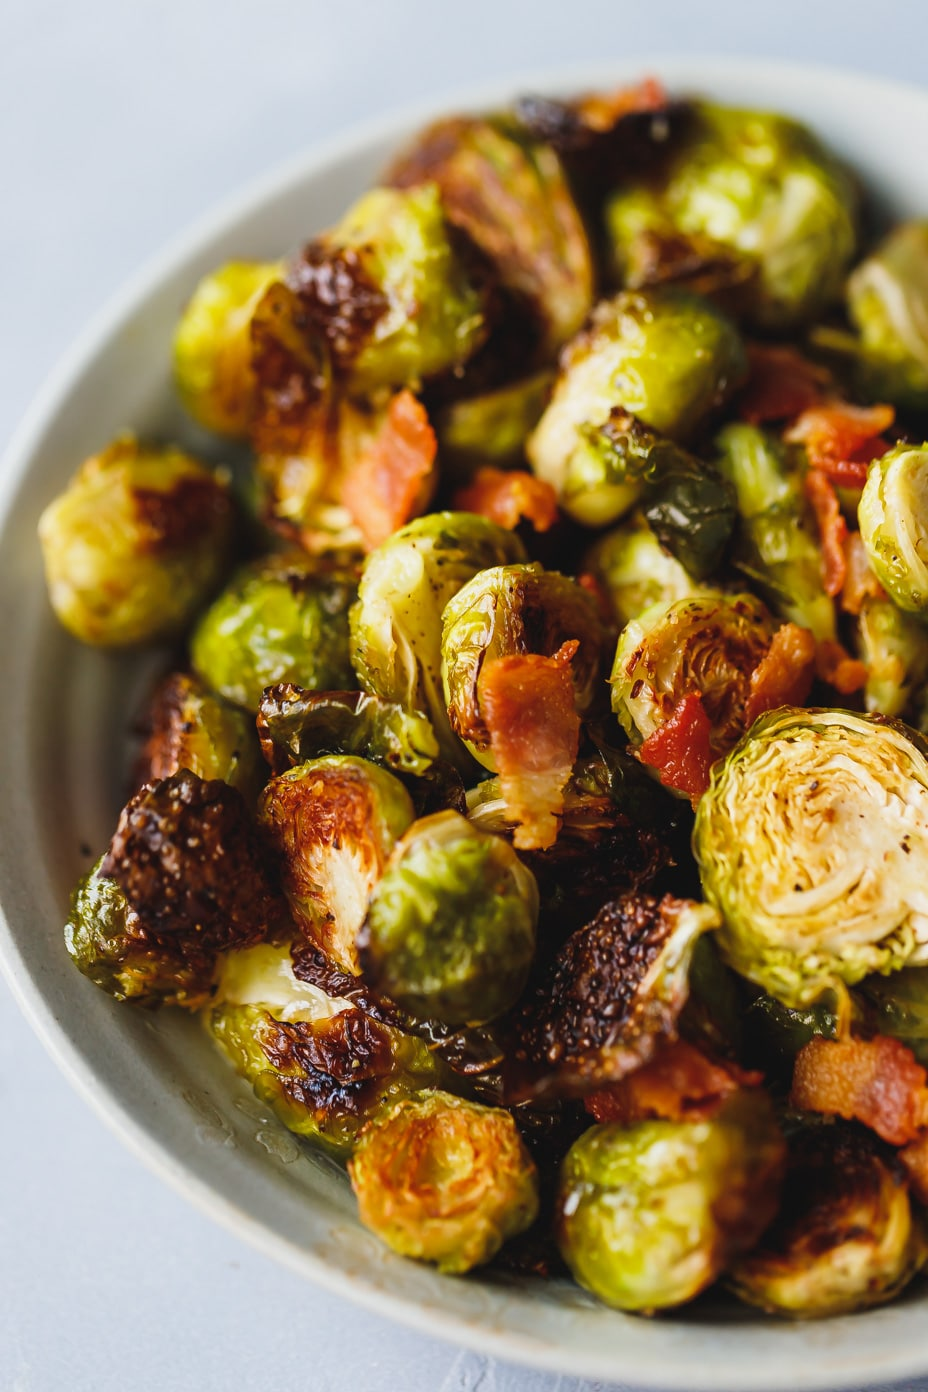 Baked Brussel Sprouts With Bacon Cooking Lsl